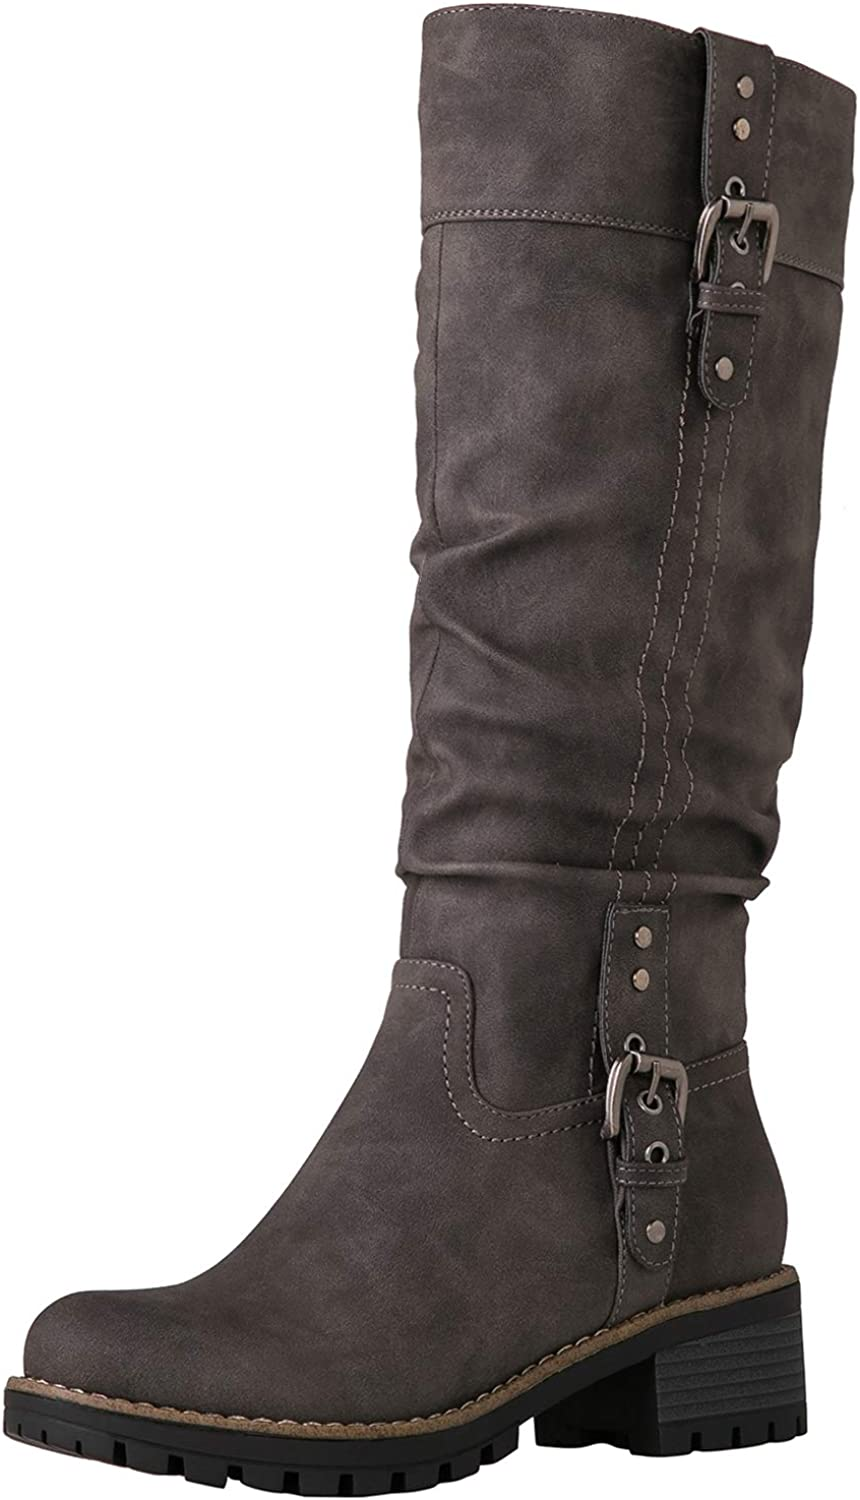 GLOBALWIN Womens The Strider/'s Boots